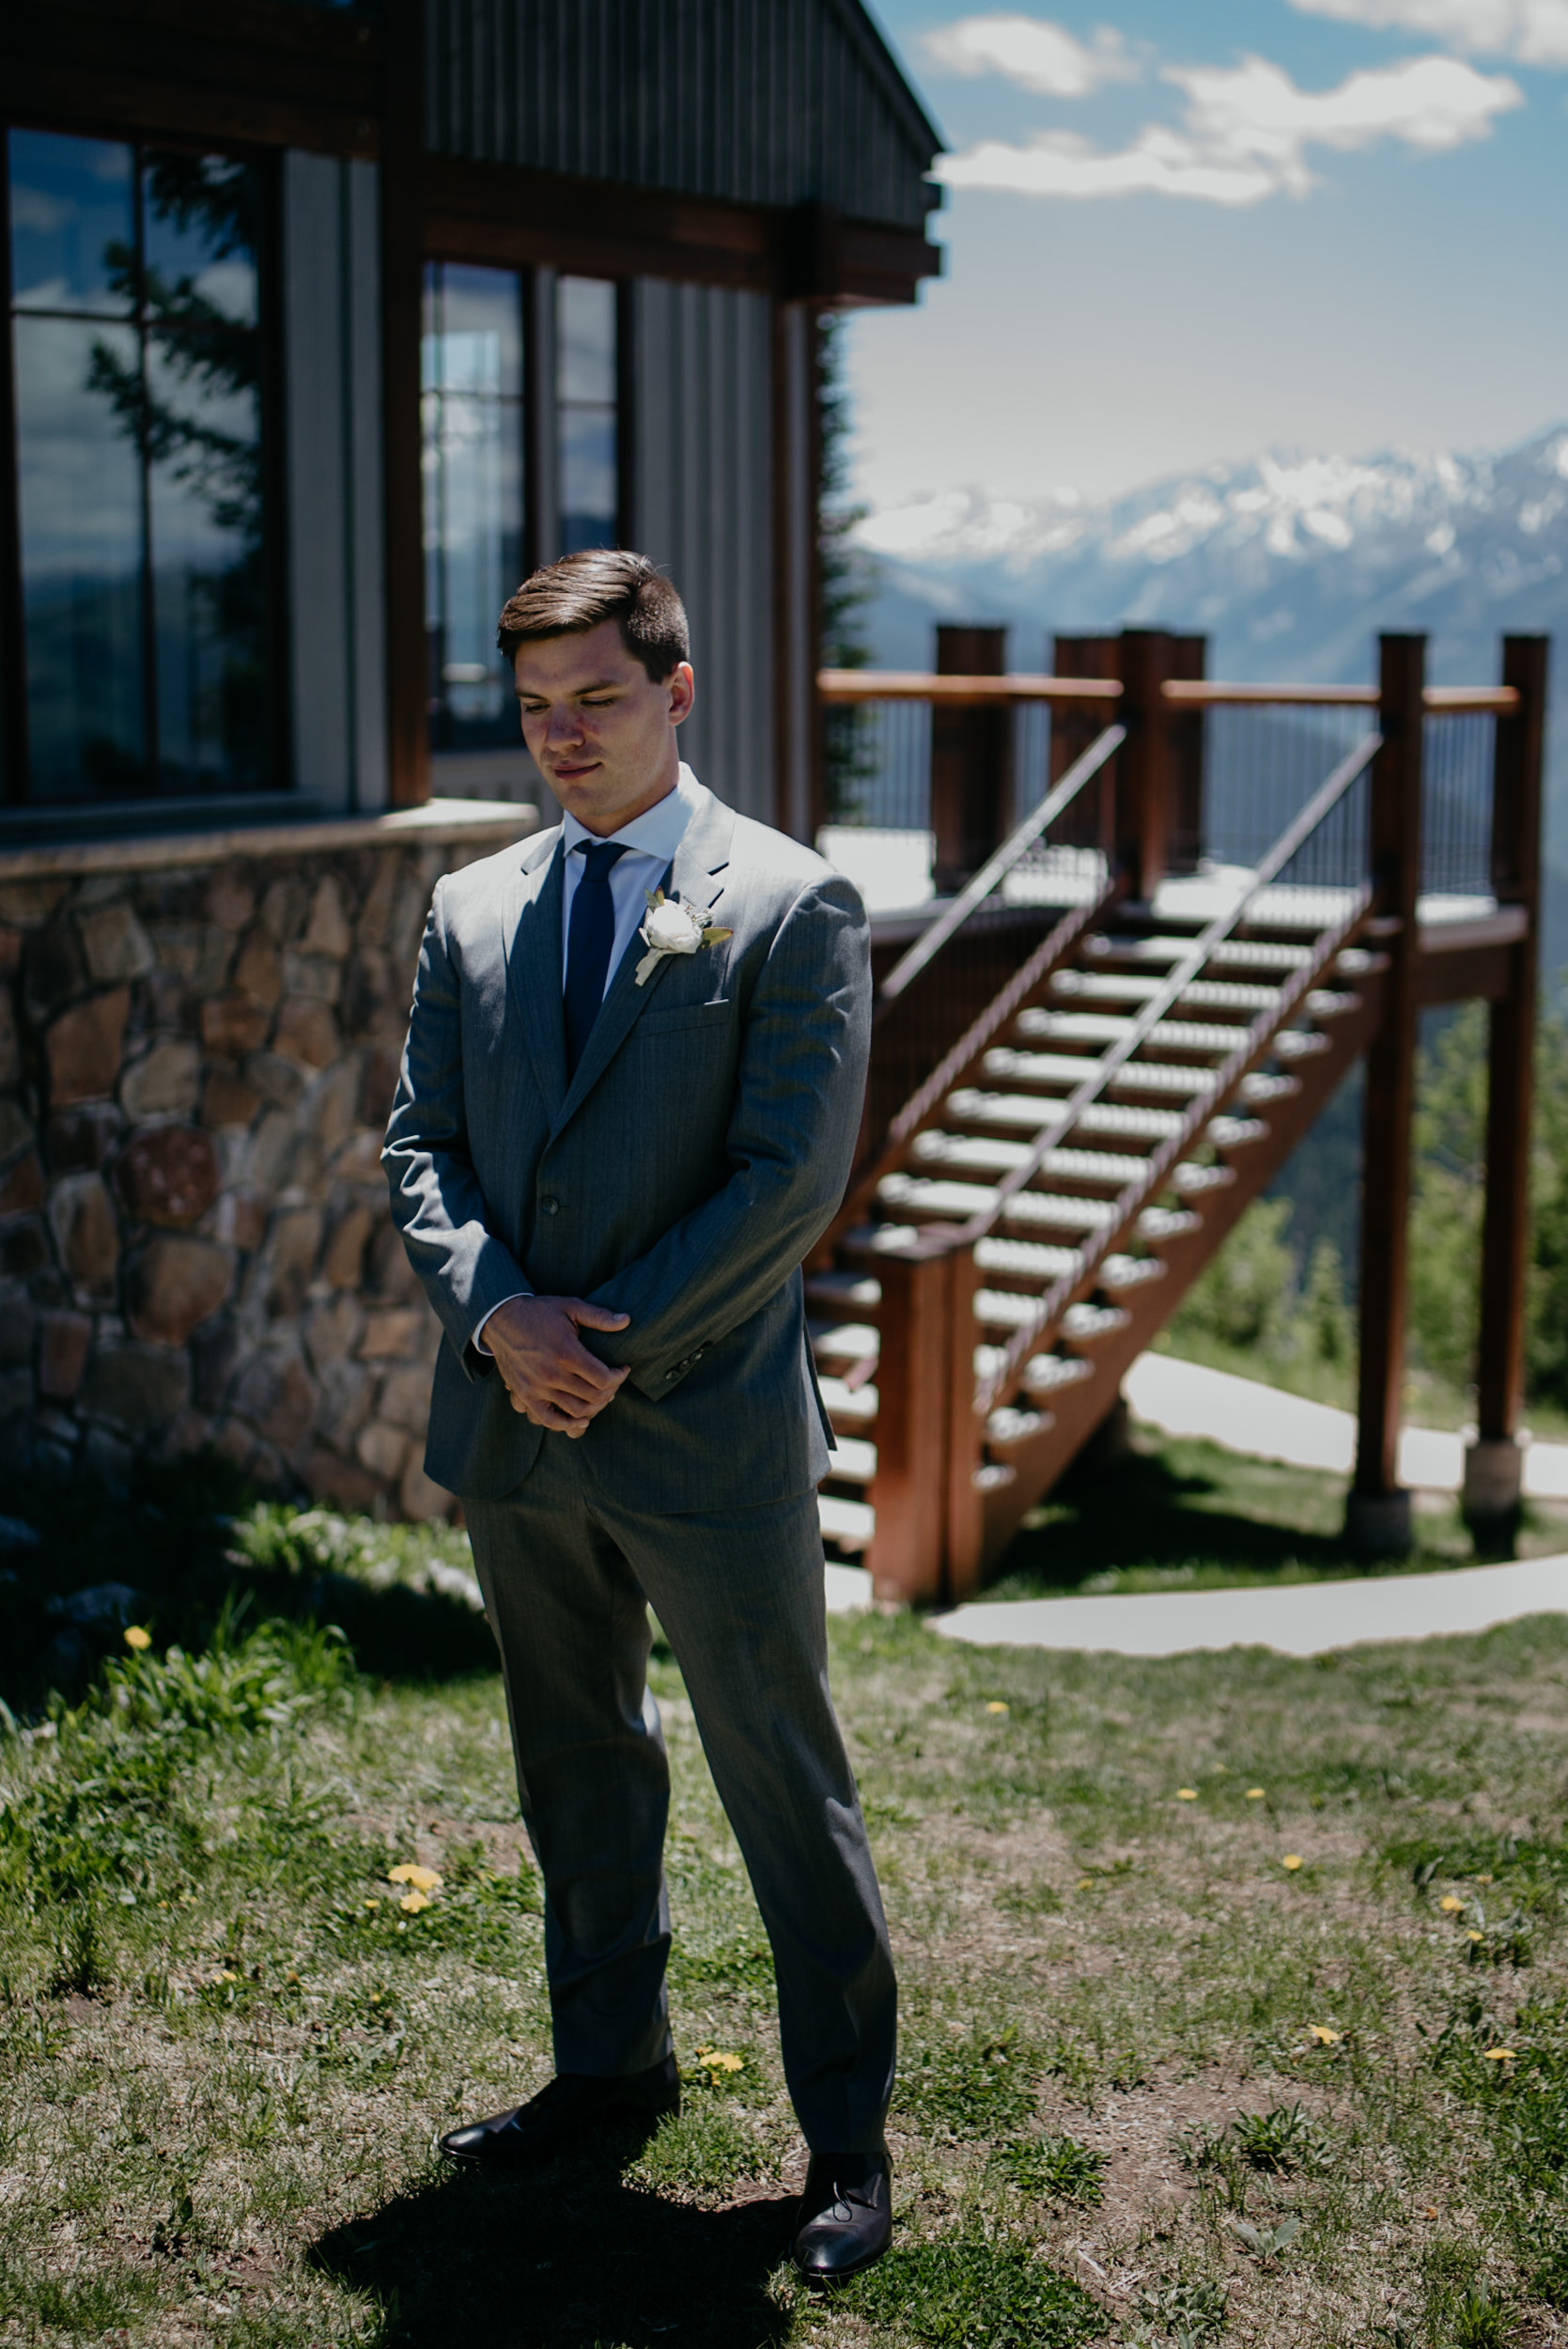 First look at The Little Nell. Aspen, Colorado wedding photographer.